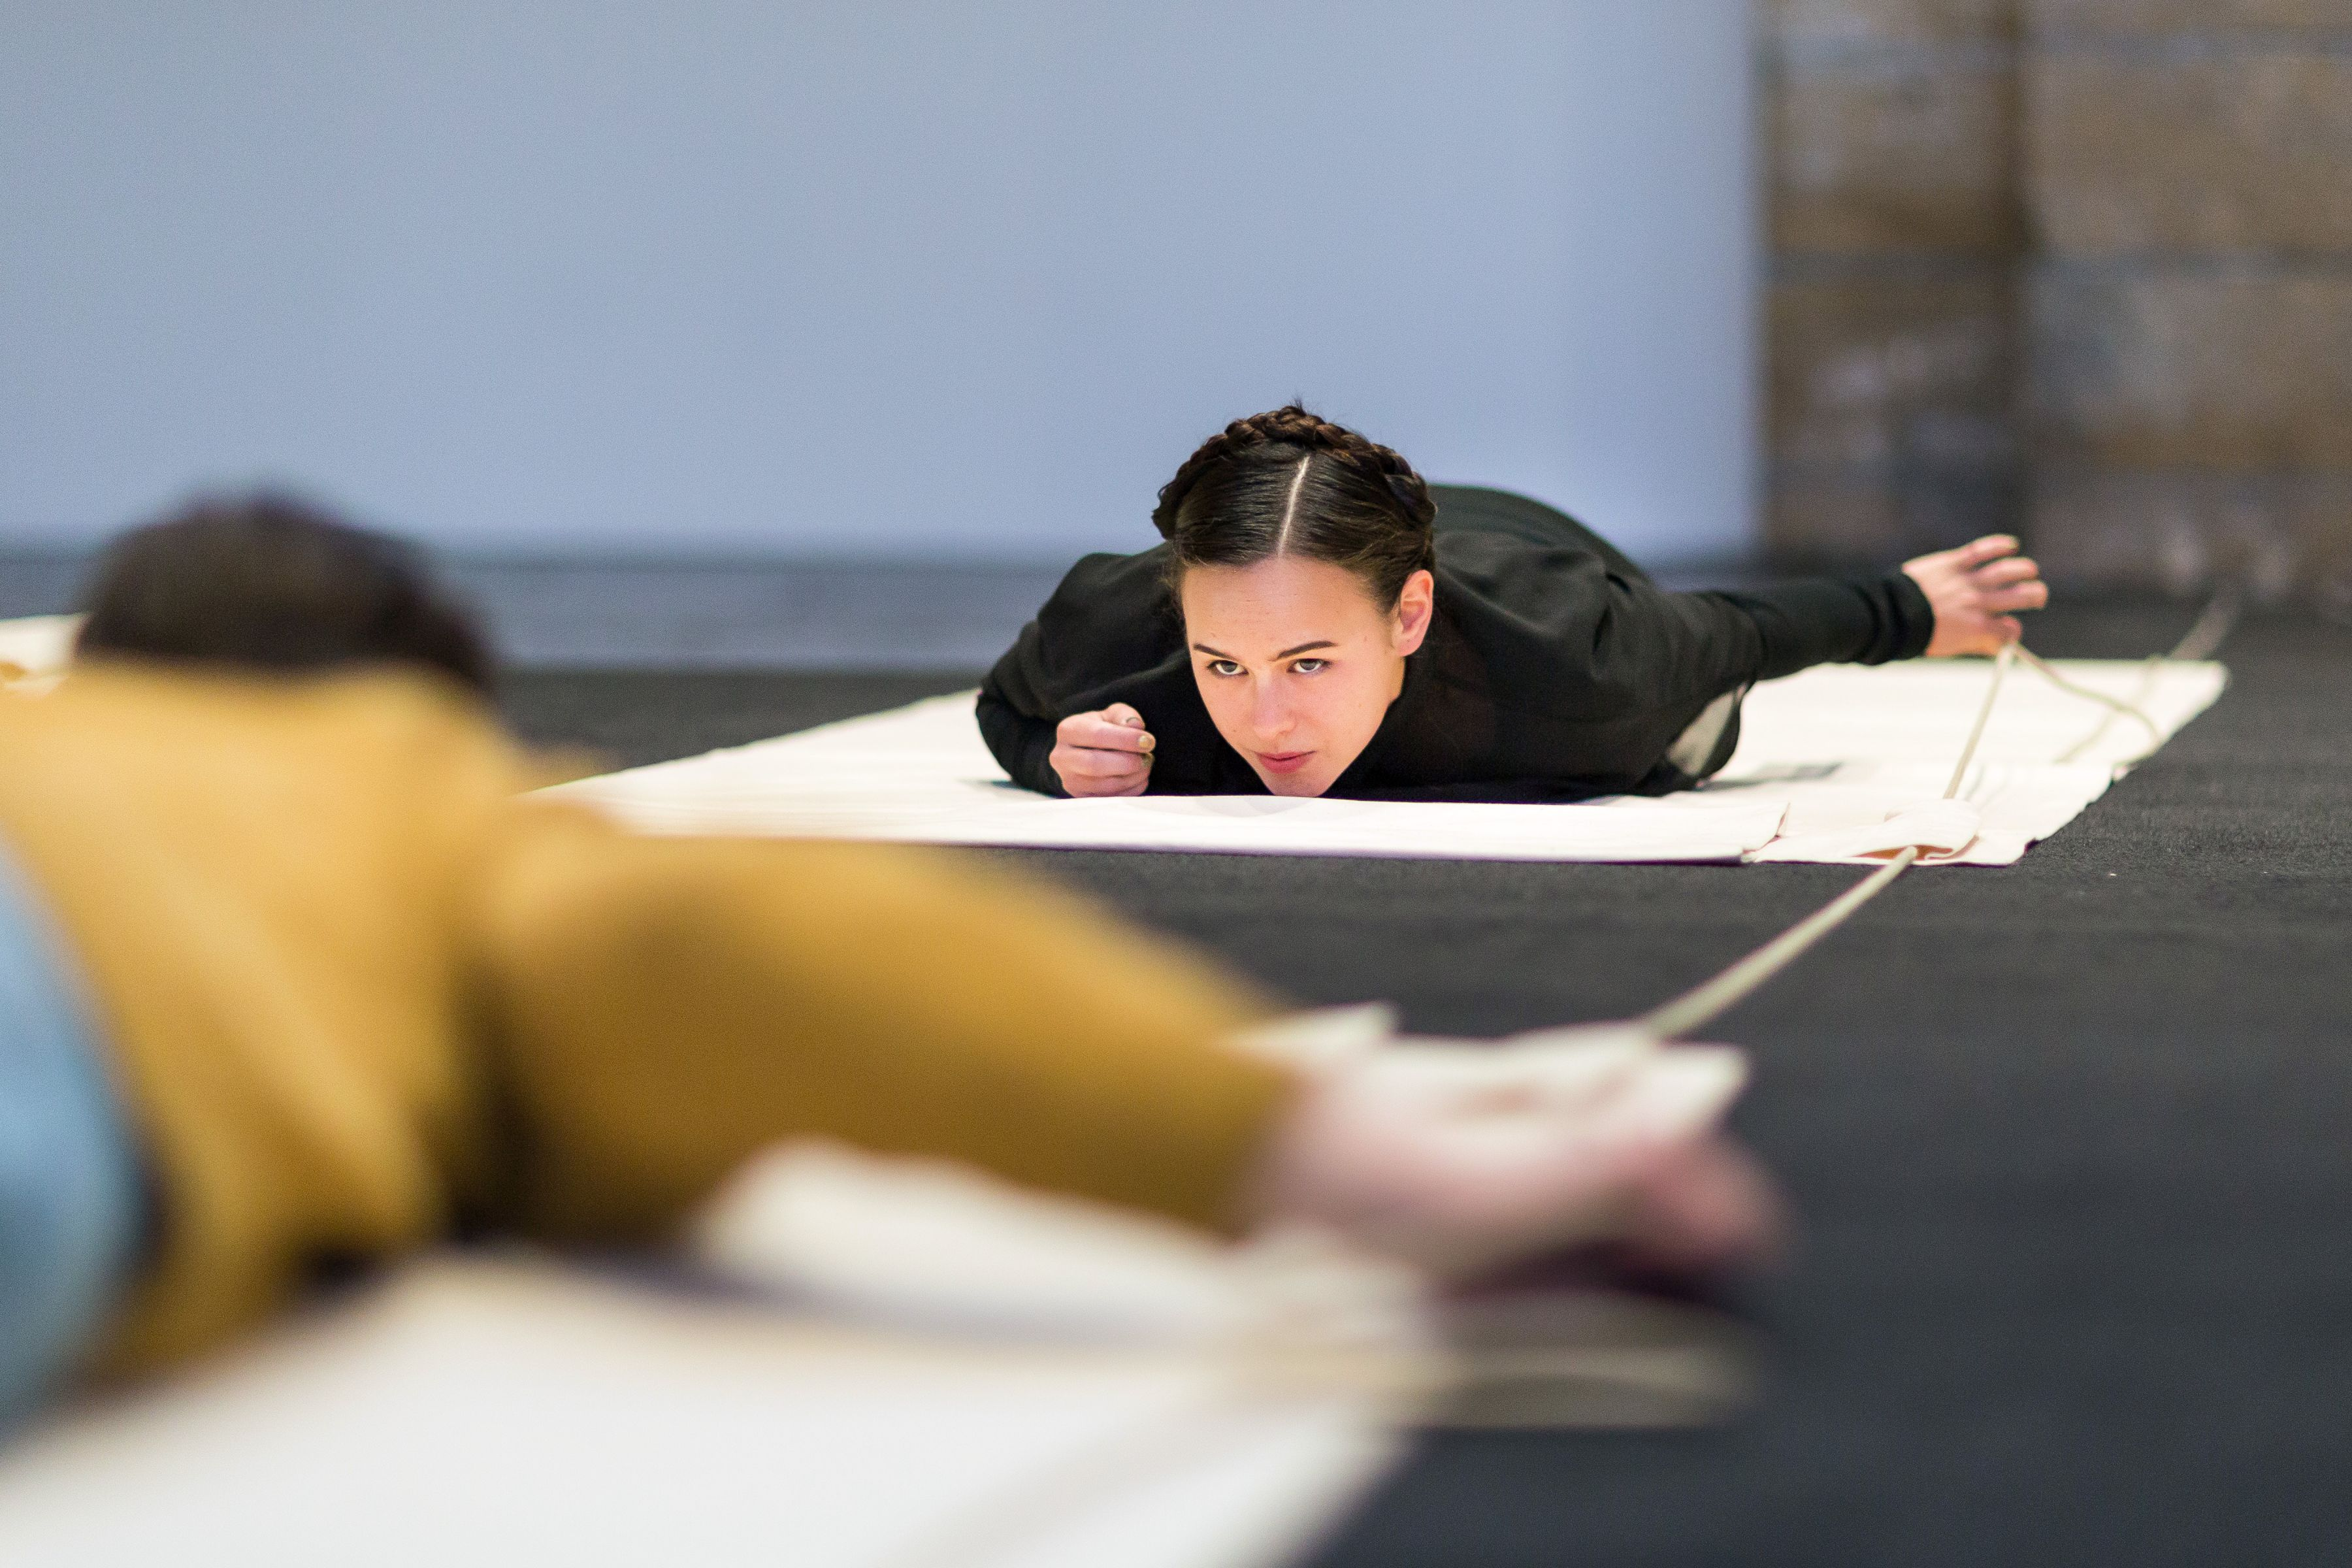 The Body Decides, Curated by Elena Filipovic and Alexis Vaillant